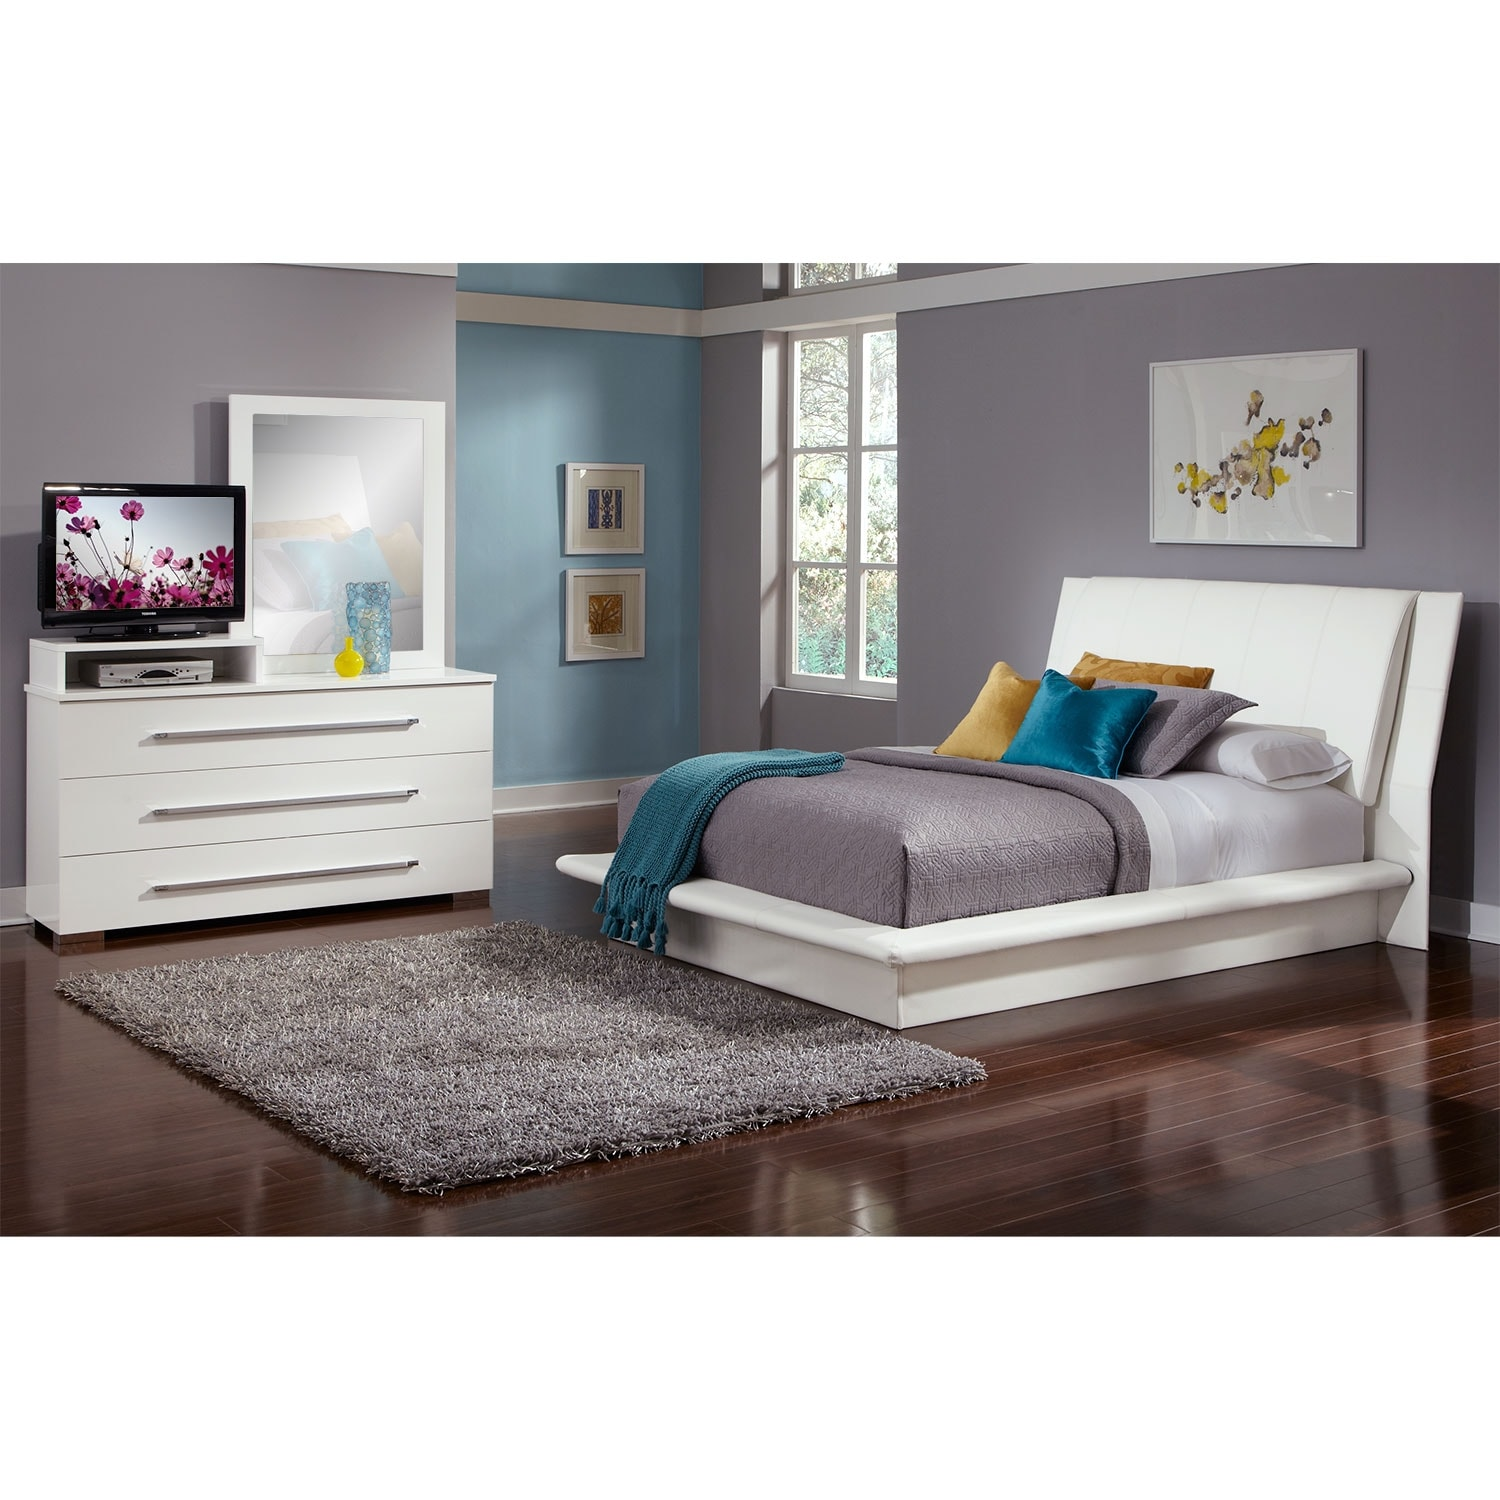 Dimora 5 Piece Queen Upholstered Bedroom Set With Media